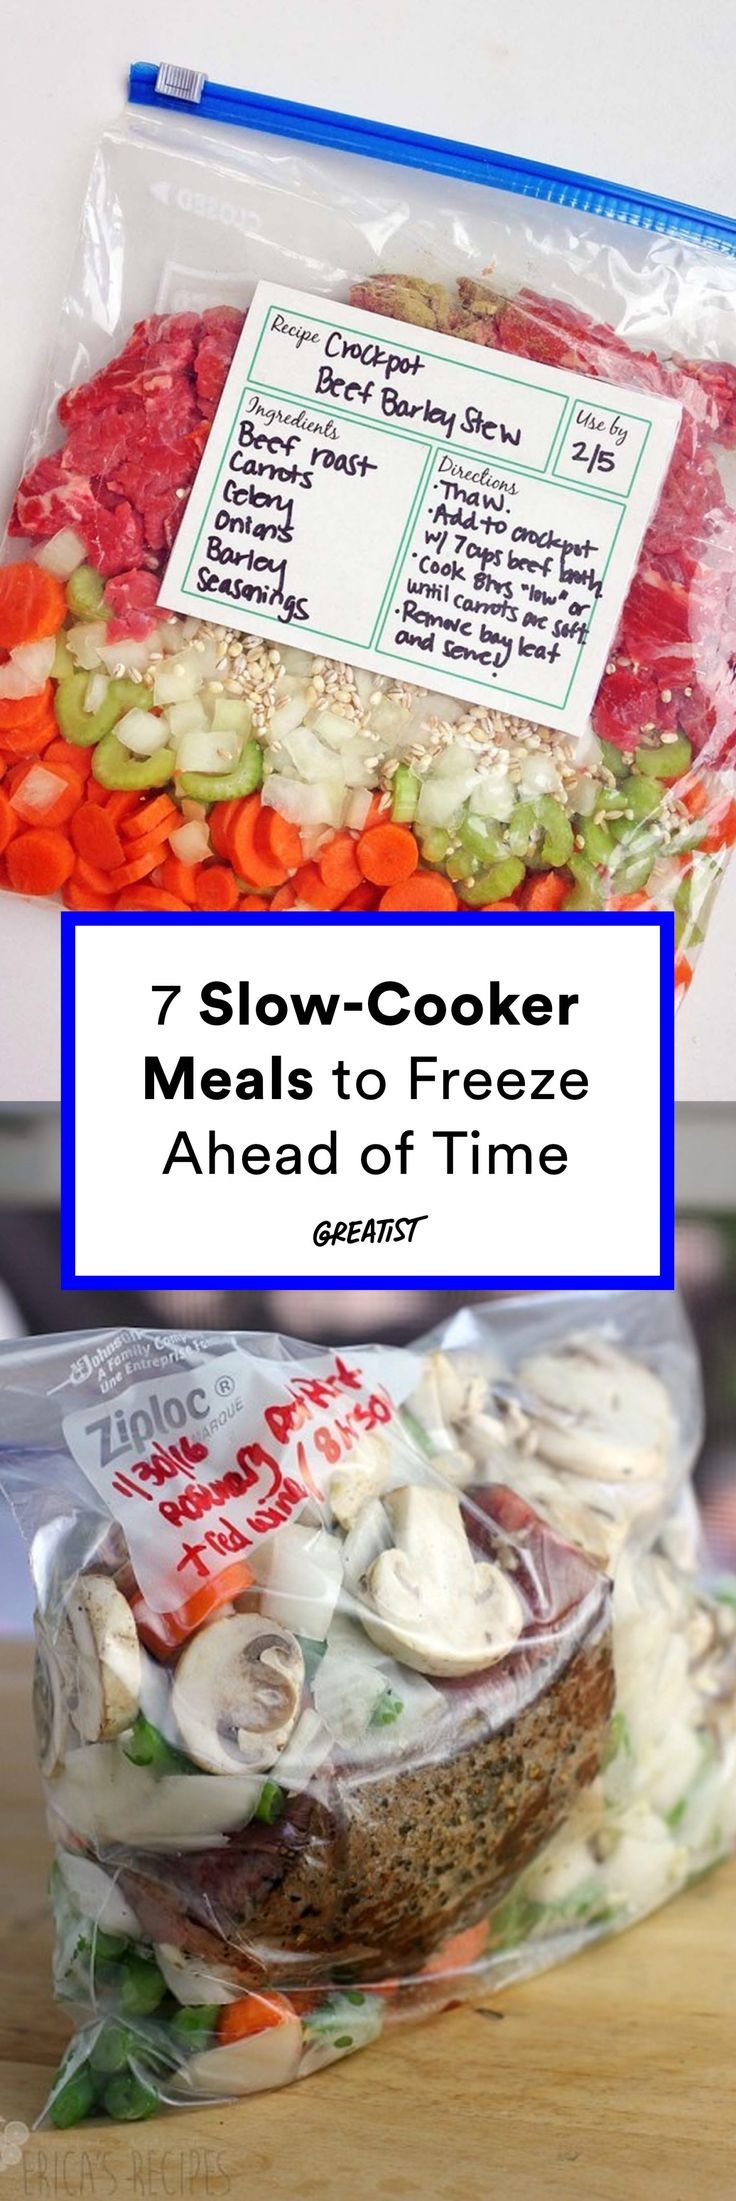 Make ahead chicken recipes that can be frozen